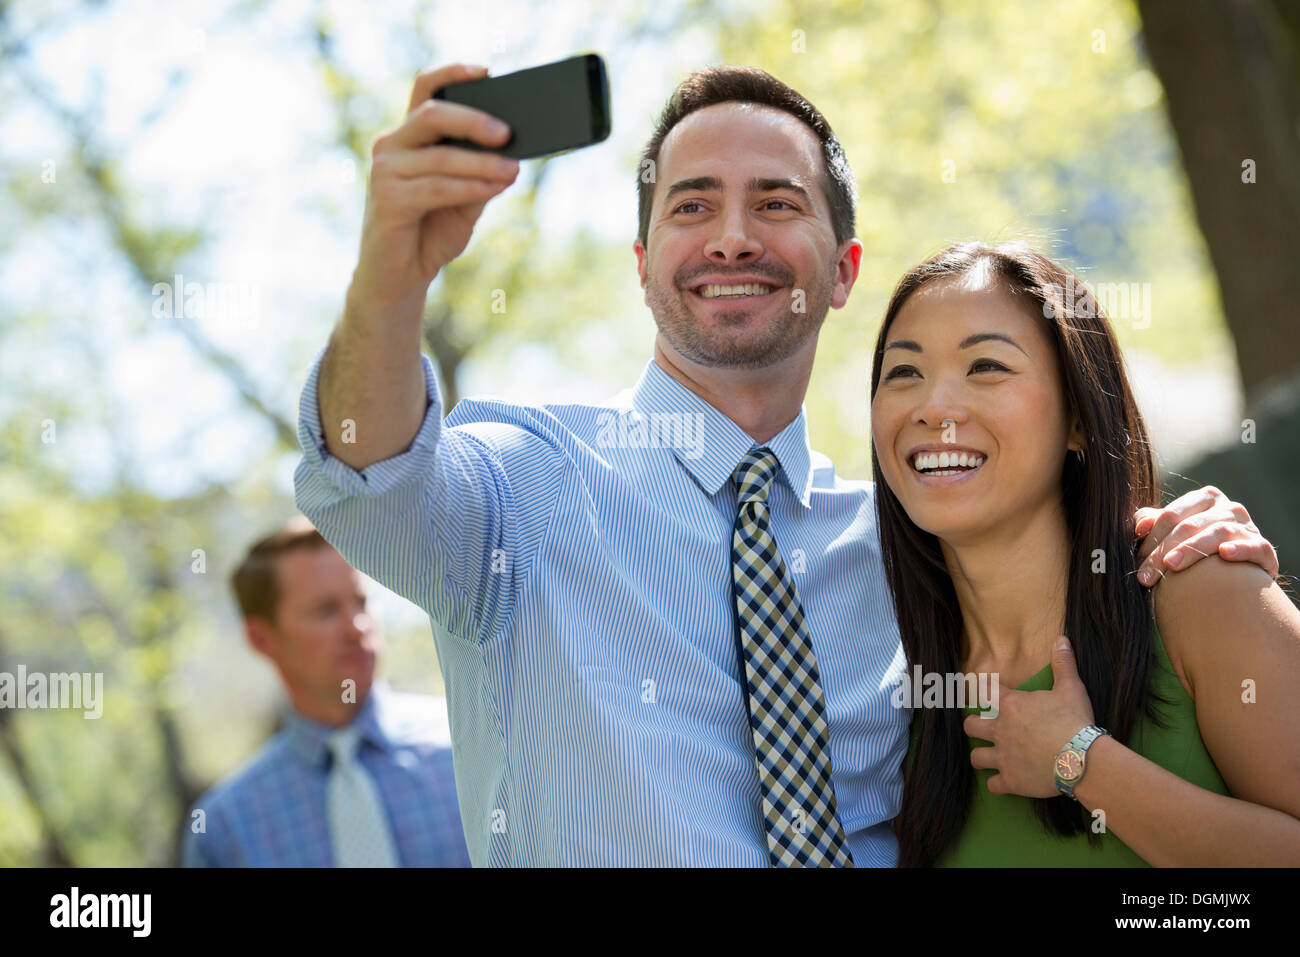 A couple with a smart phone, side by side. A man in the background. Stock Photo